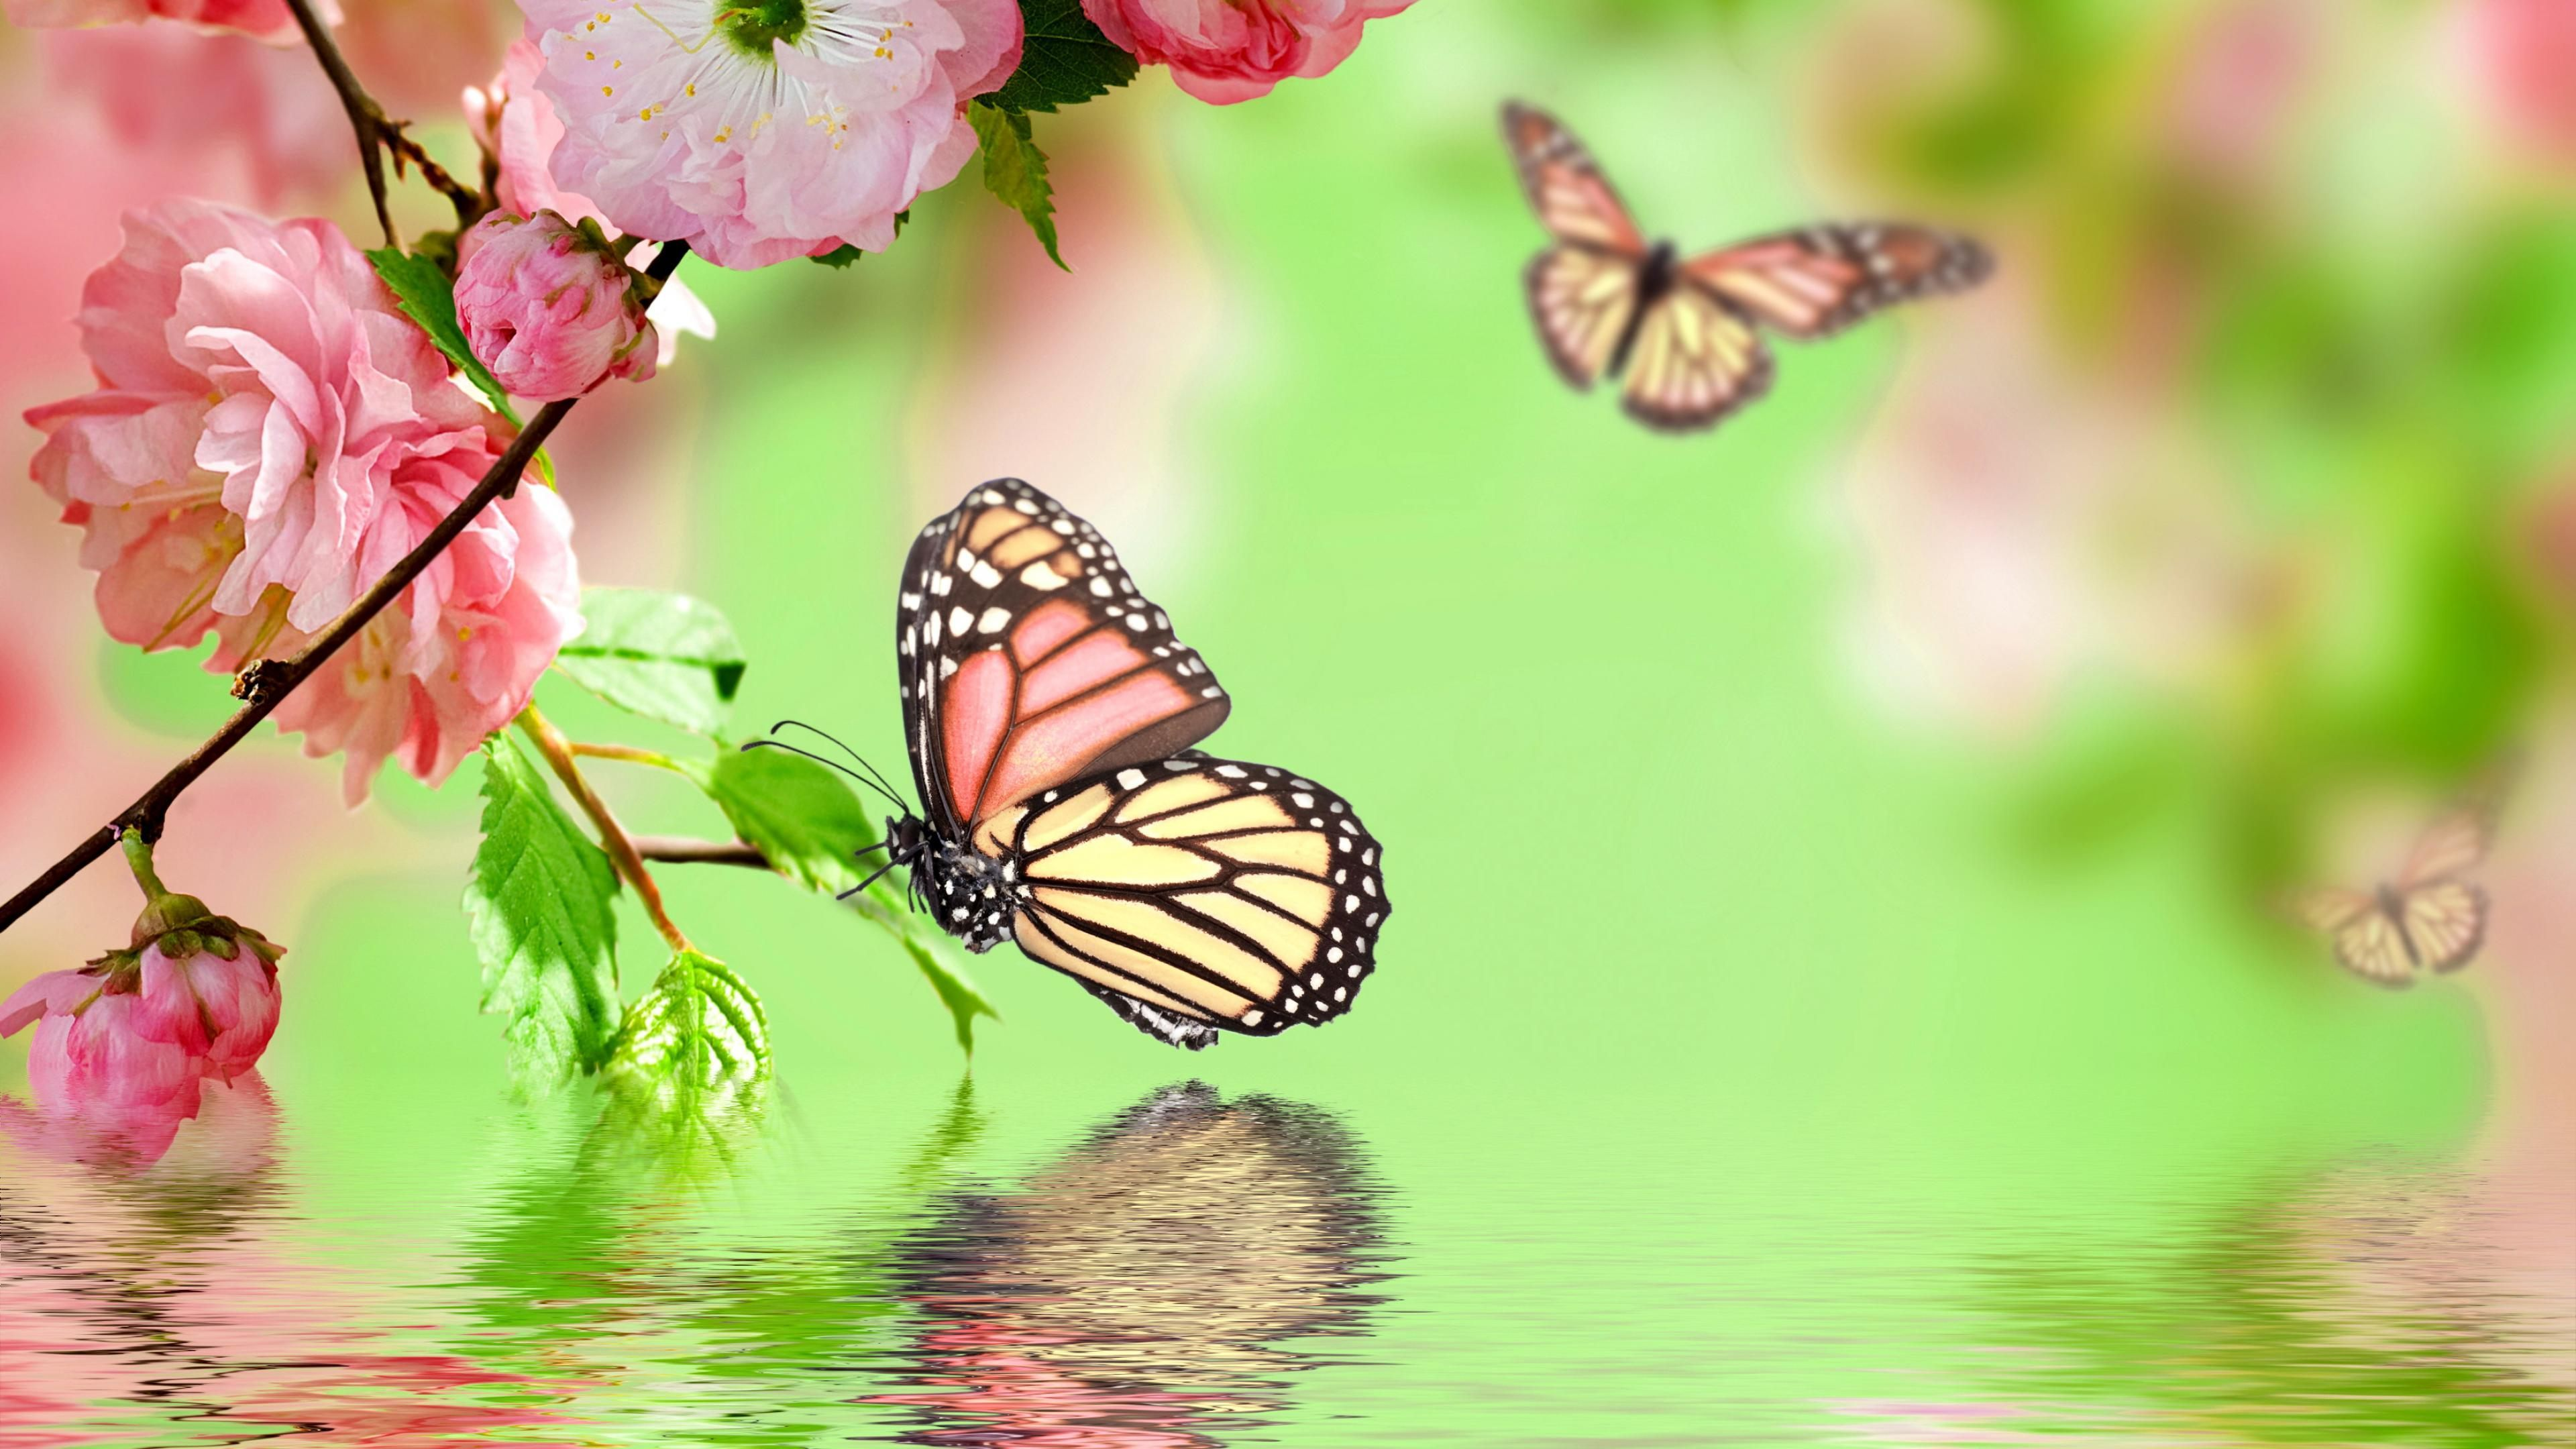 Wallpaper Butterfly